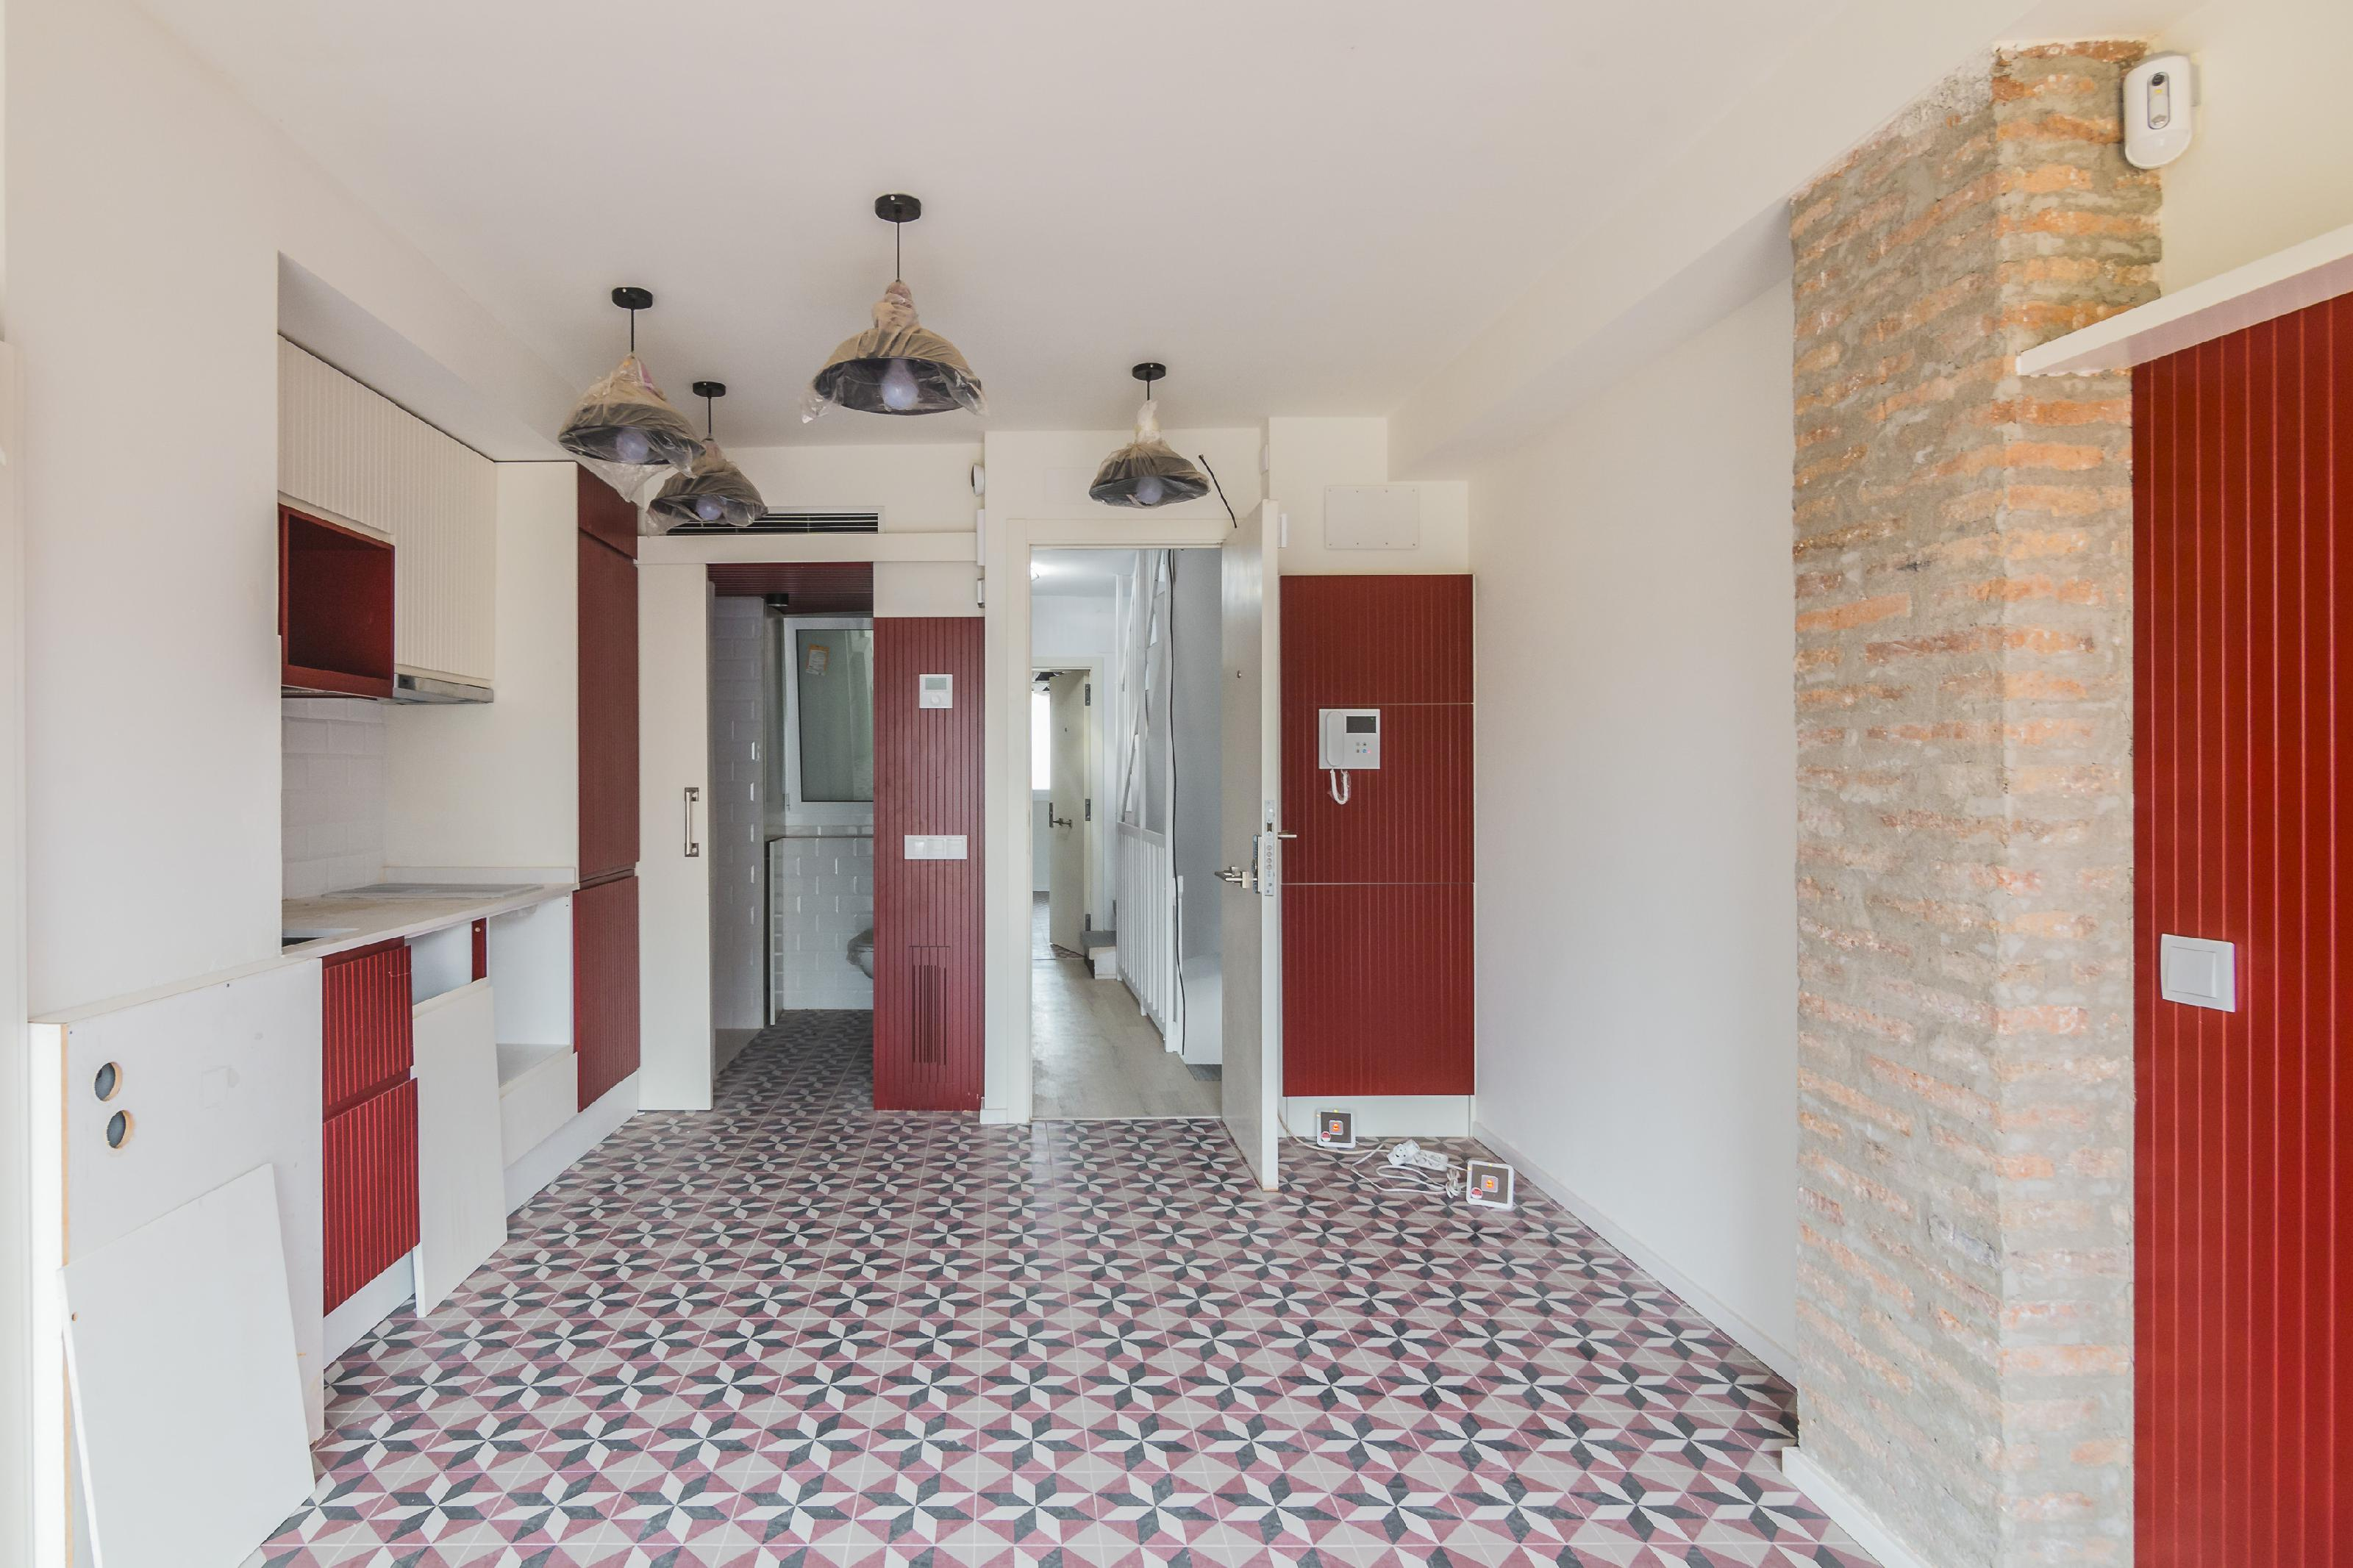 237520 Flat for sale in Ciutat Vella, St. Pere St. Caterina and La Ribera 3